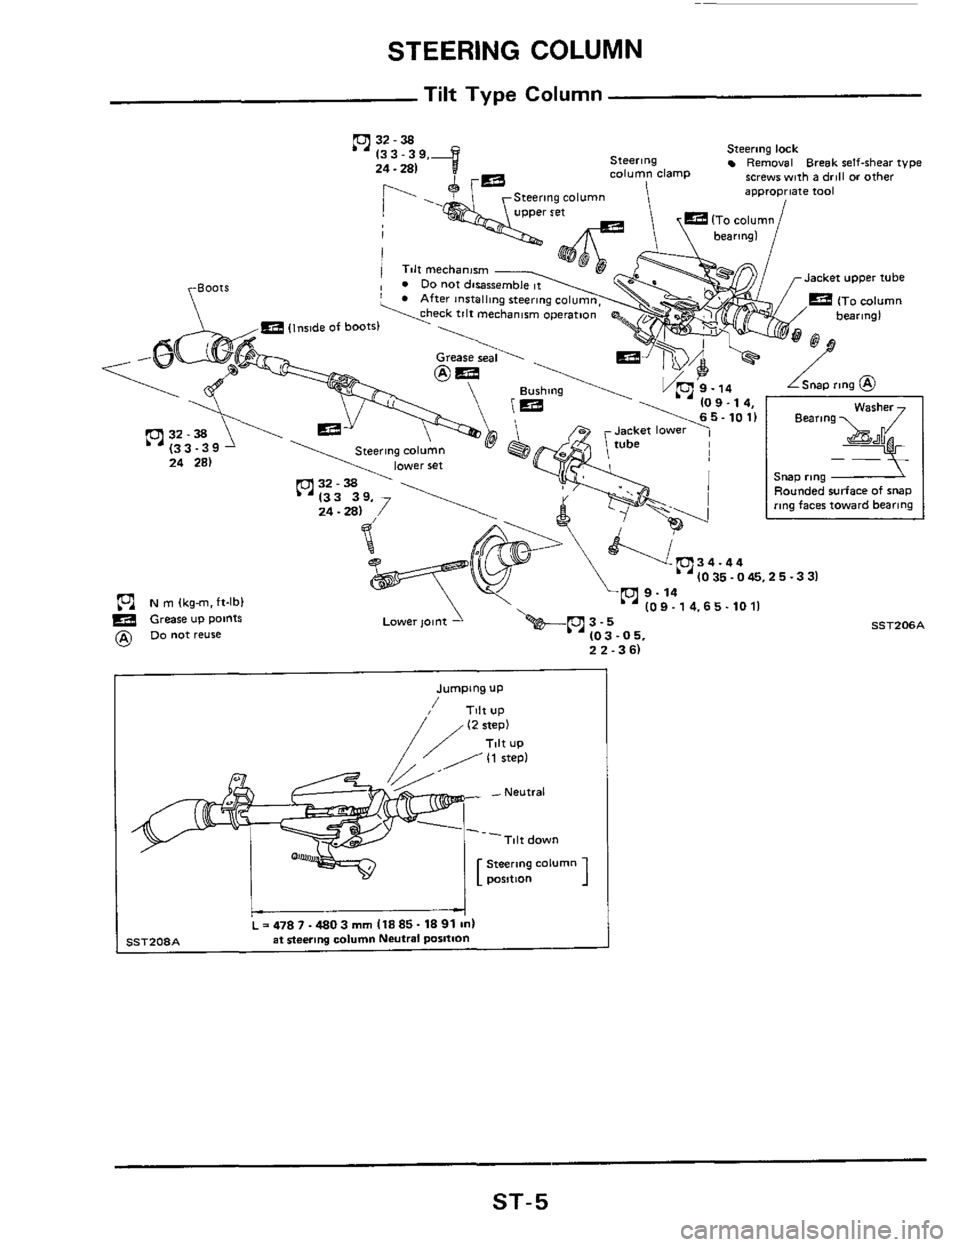 NISSAN 300ZX 1984 Z31 Steering System Workshop Manual, Page 5